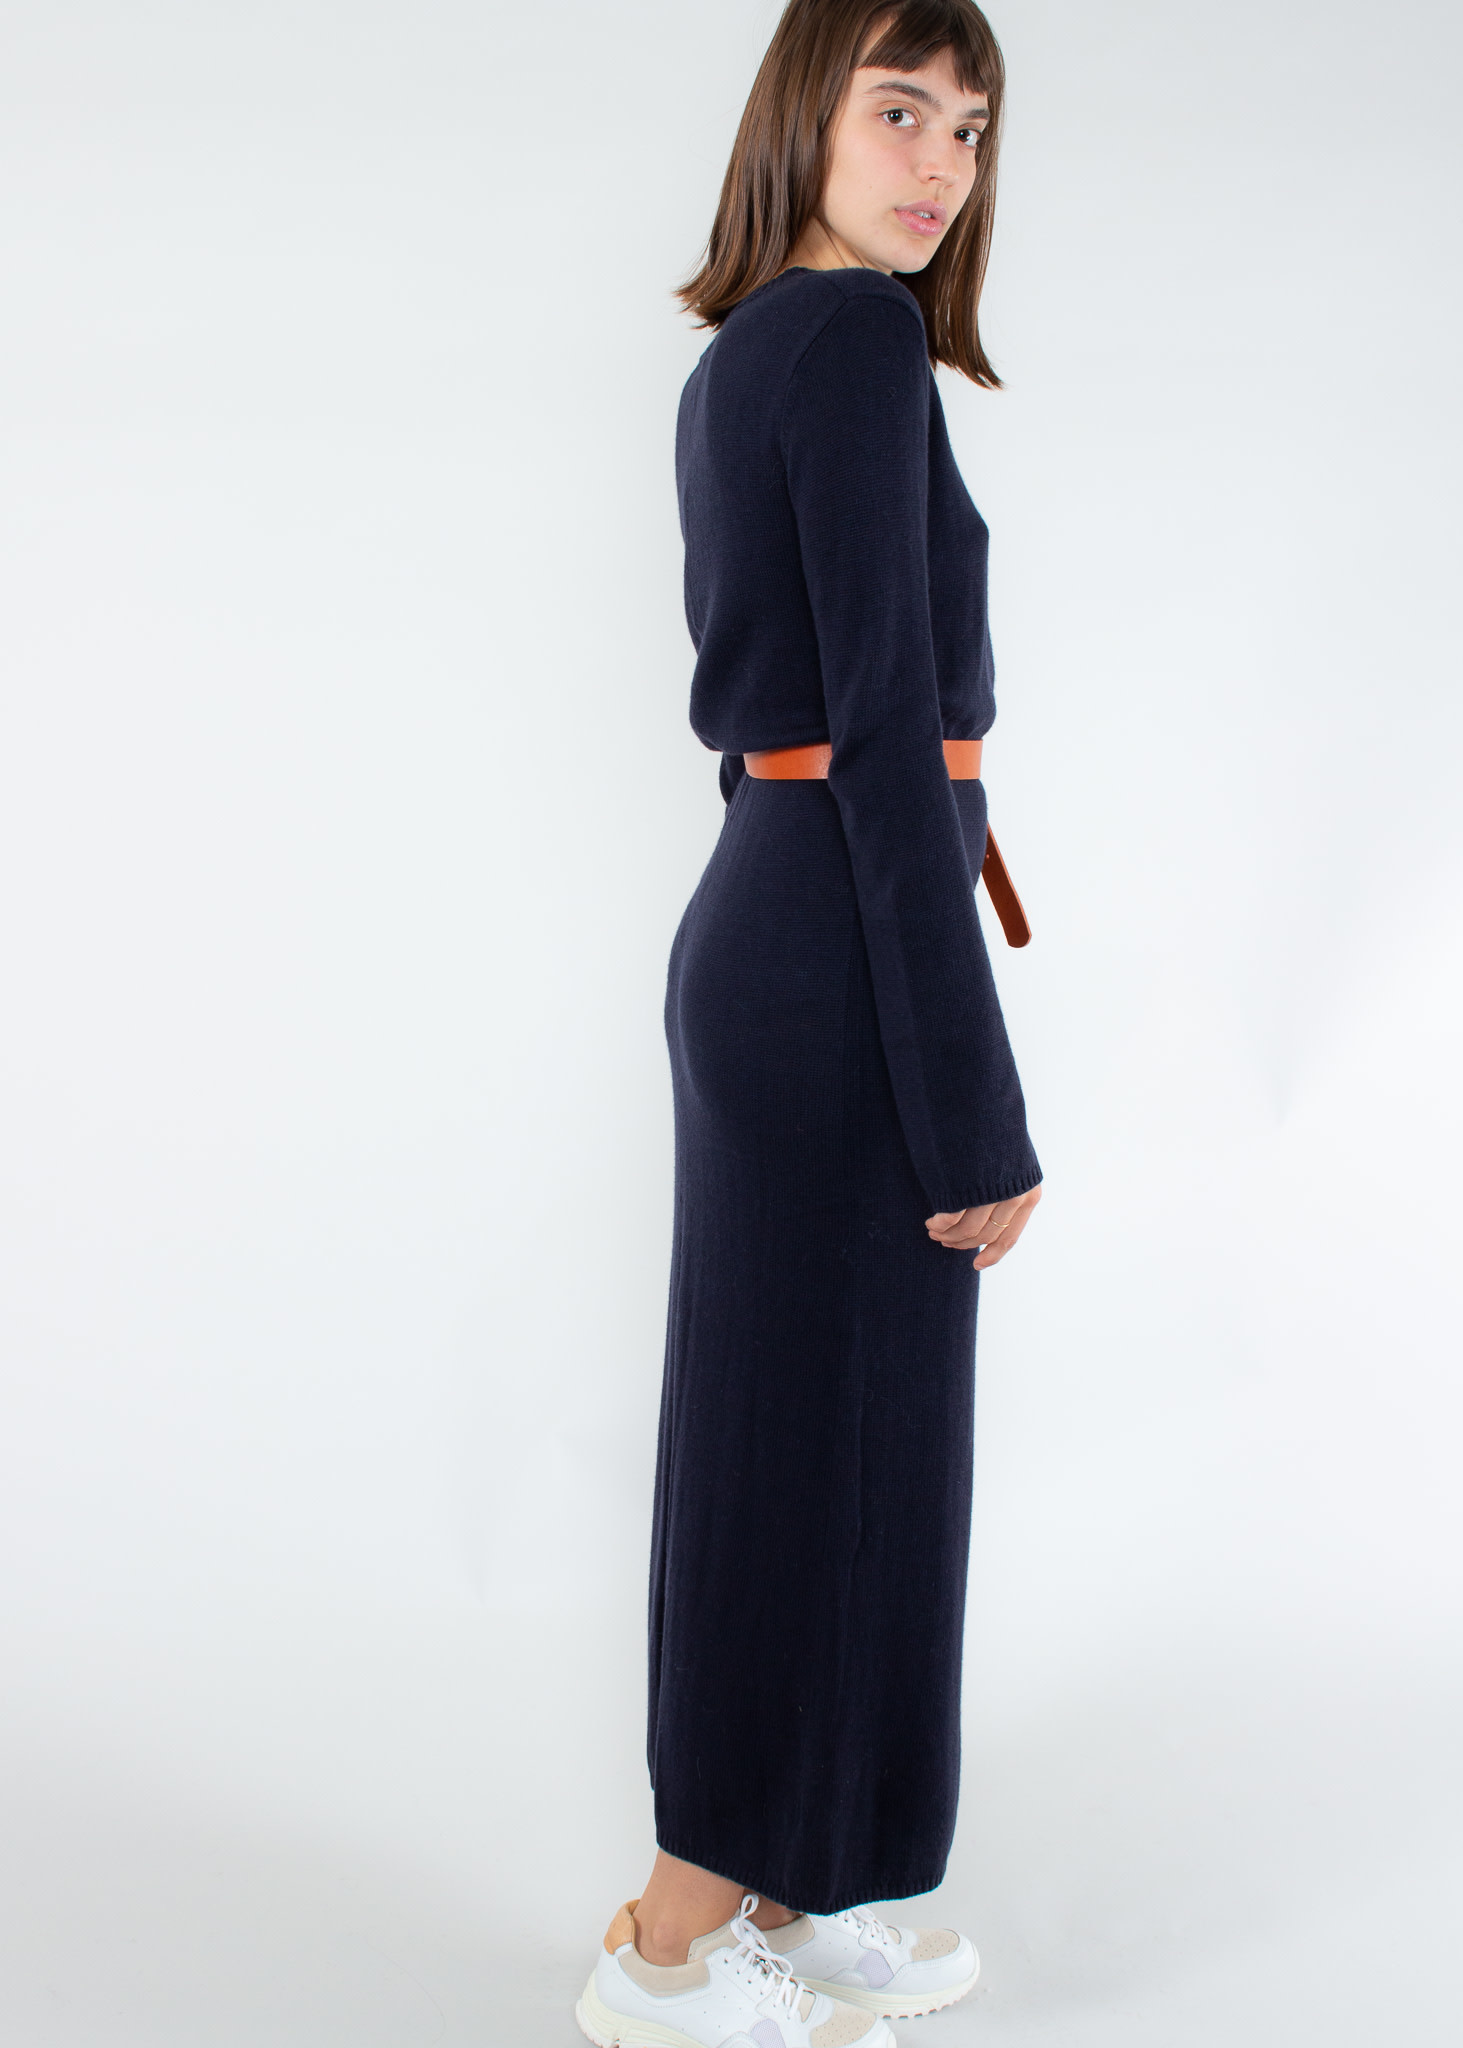 ASSEMBLY LABEL Knitted Dress True Navy